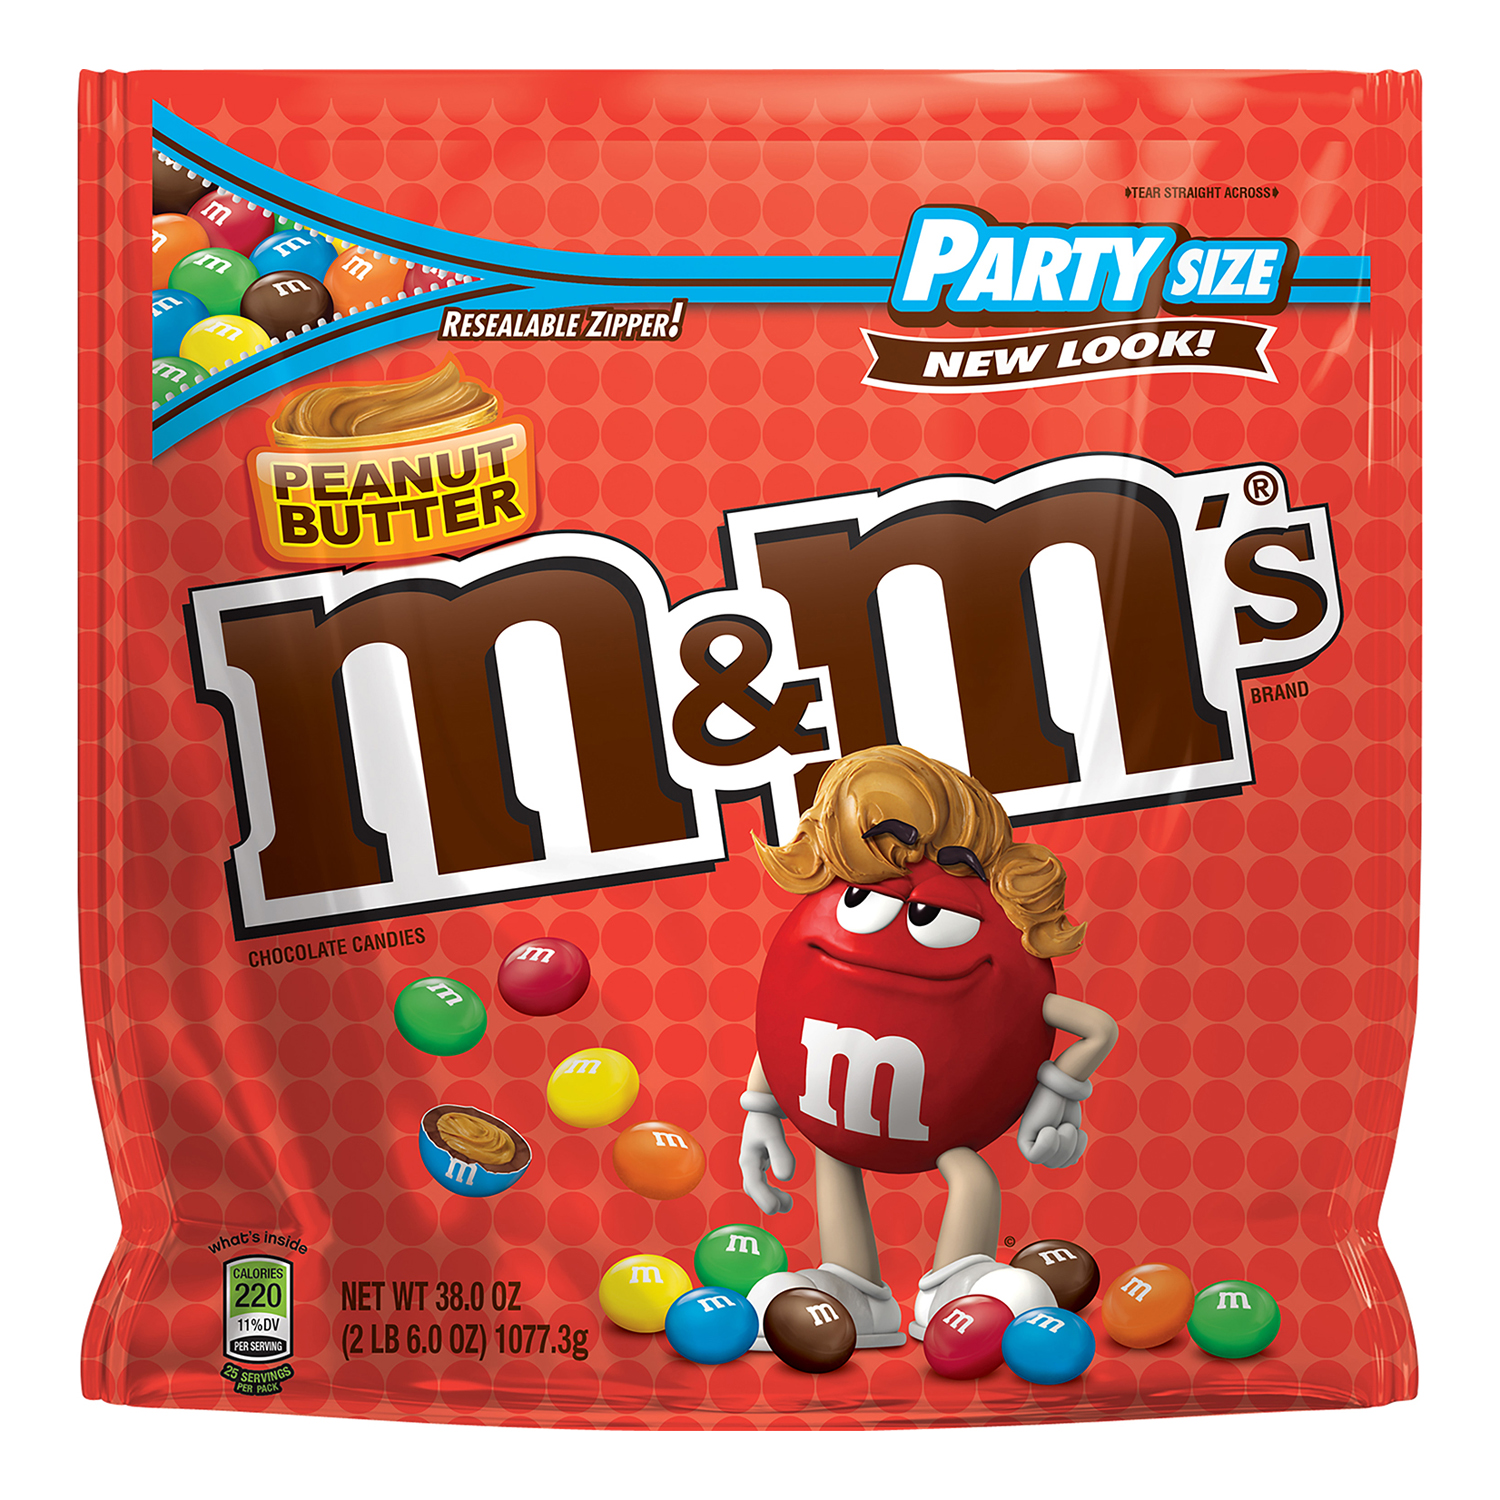 M&Ms Party Size Peanut Butter Chocolate Candies - 38oz